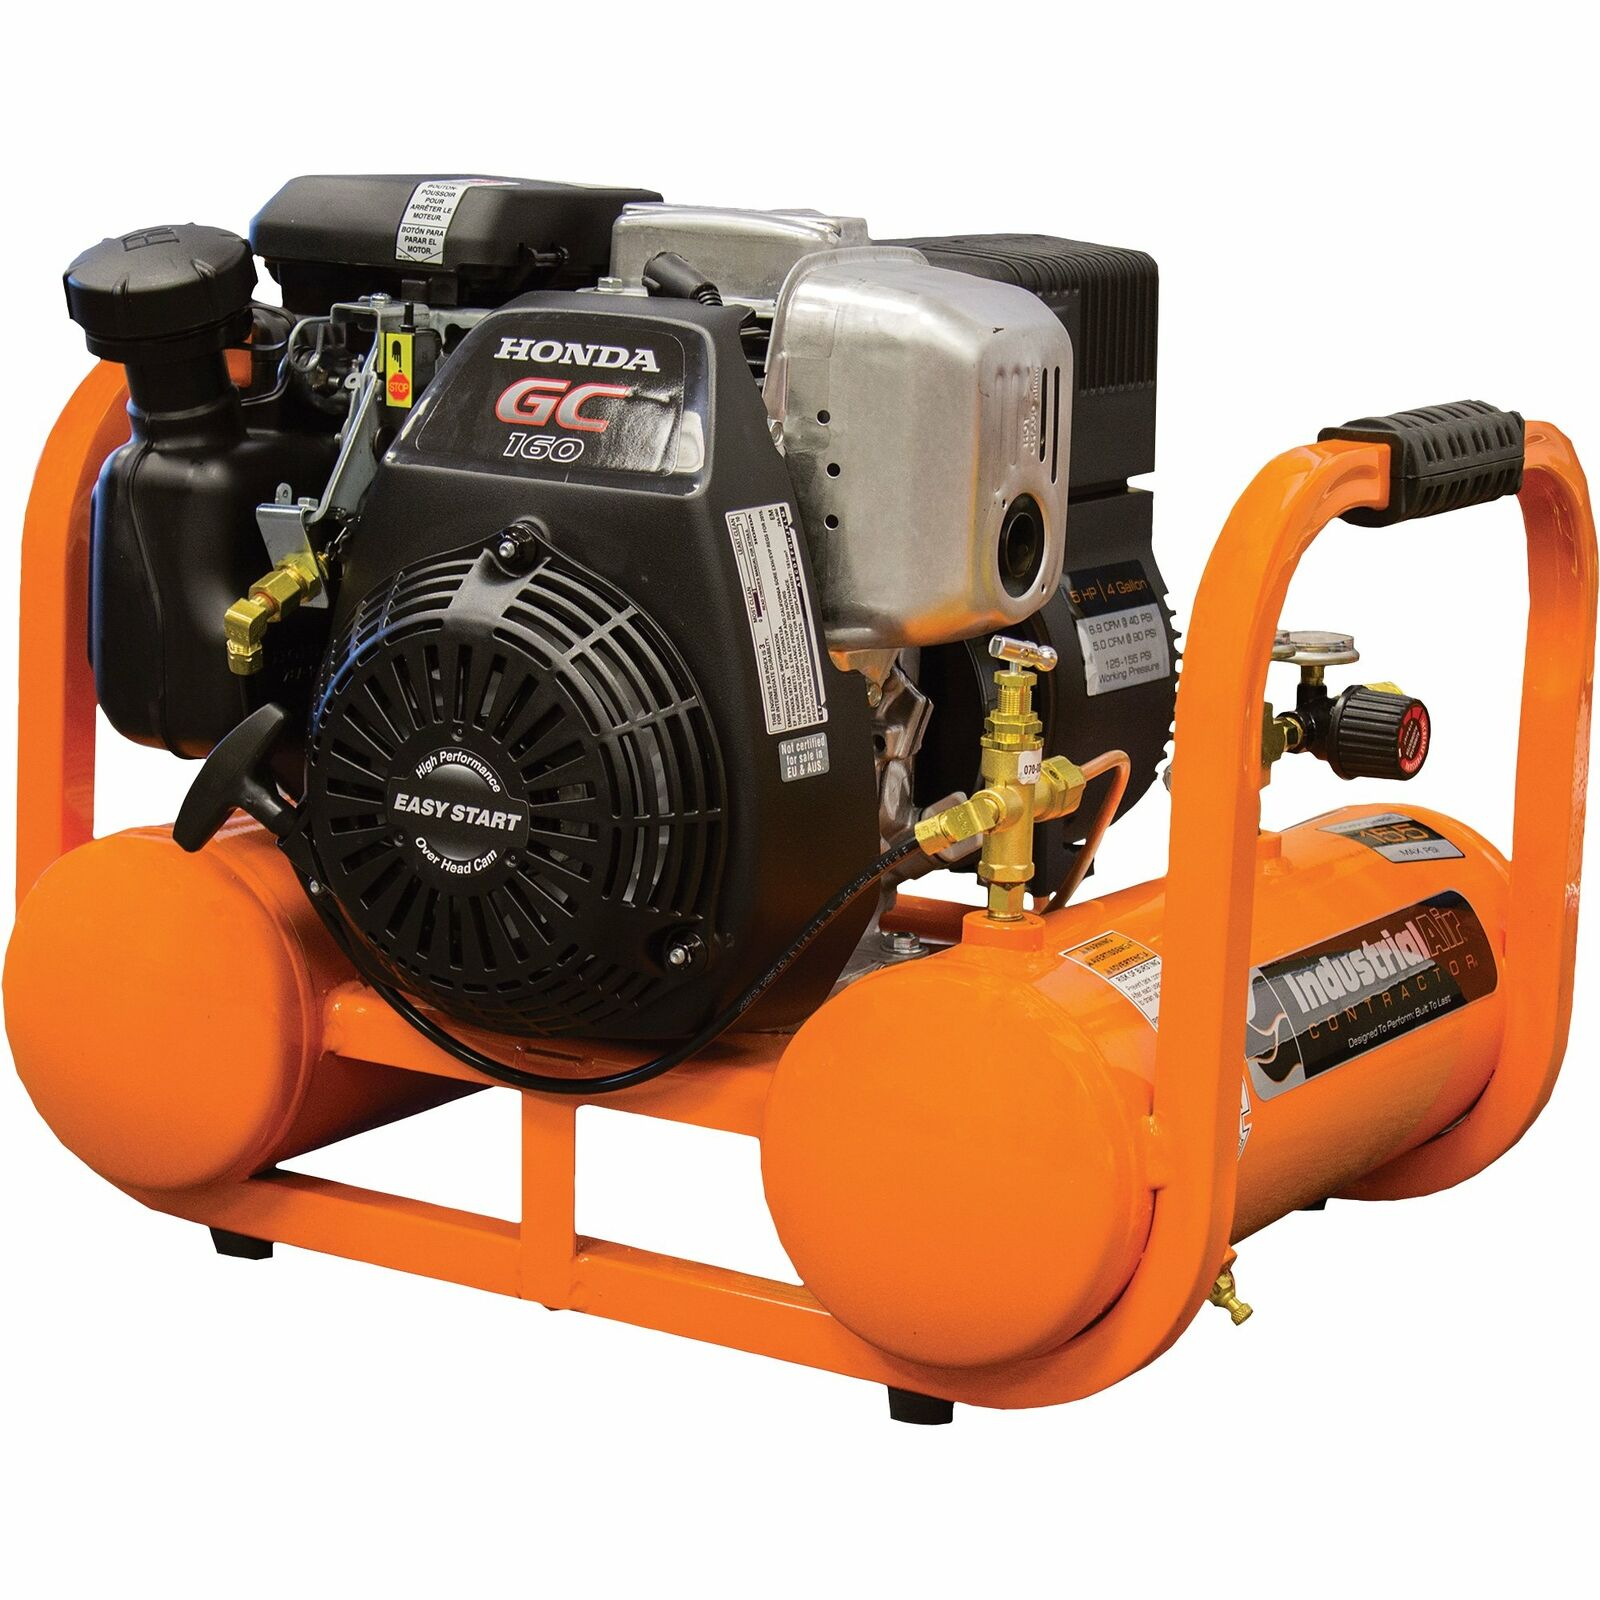 Industrial Air Contractor Pontoon Air Compressor w/Honda OHC Eng 4 Gal 155 PSI. Buy it now for 619.99